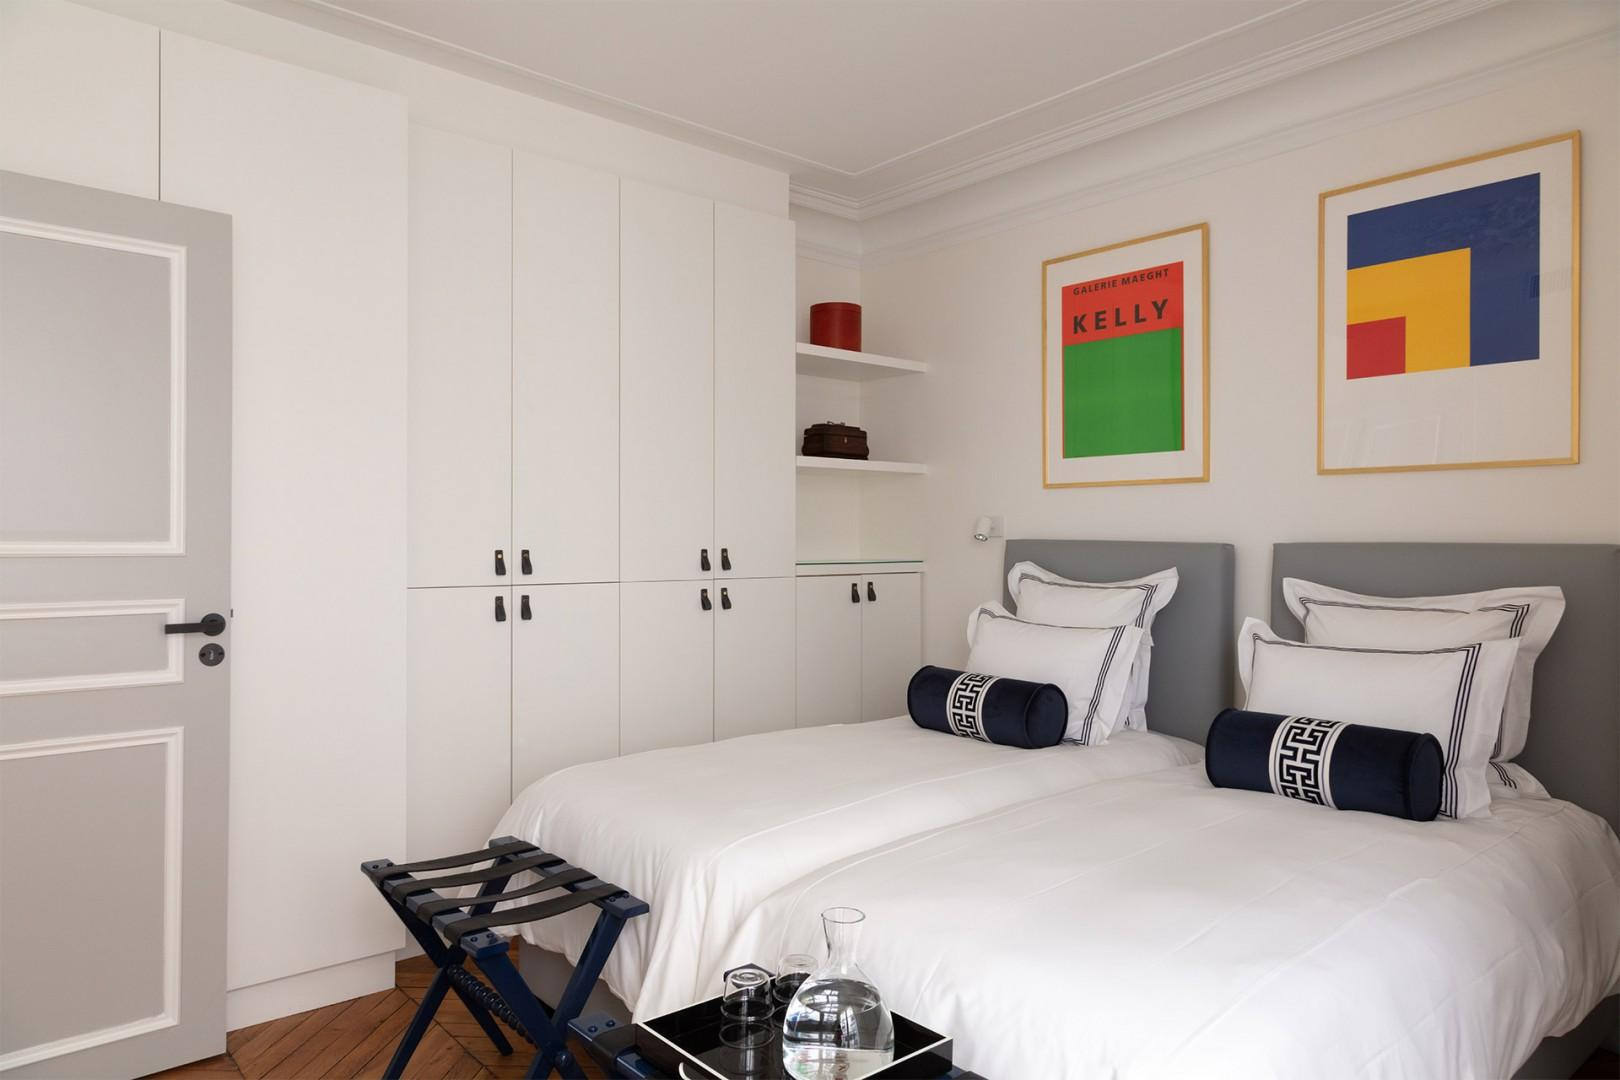 There are practical built-in closets in bedroom 3.